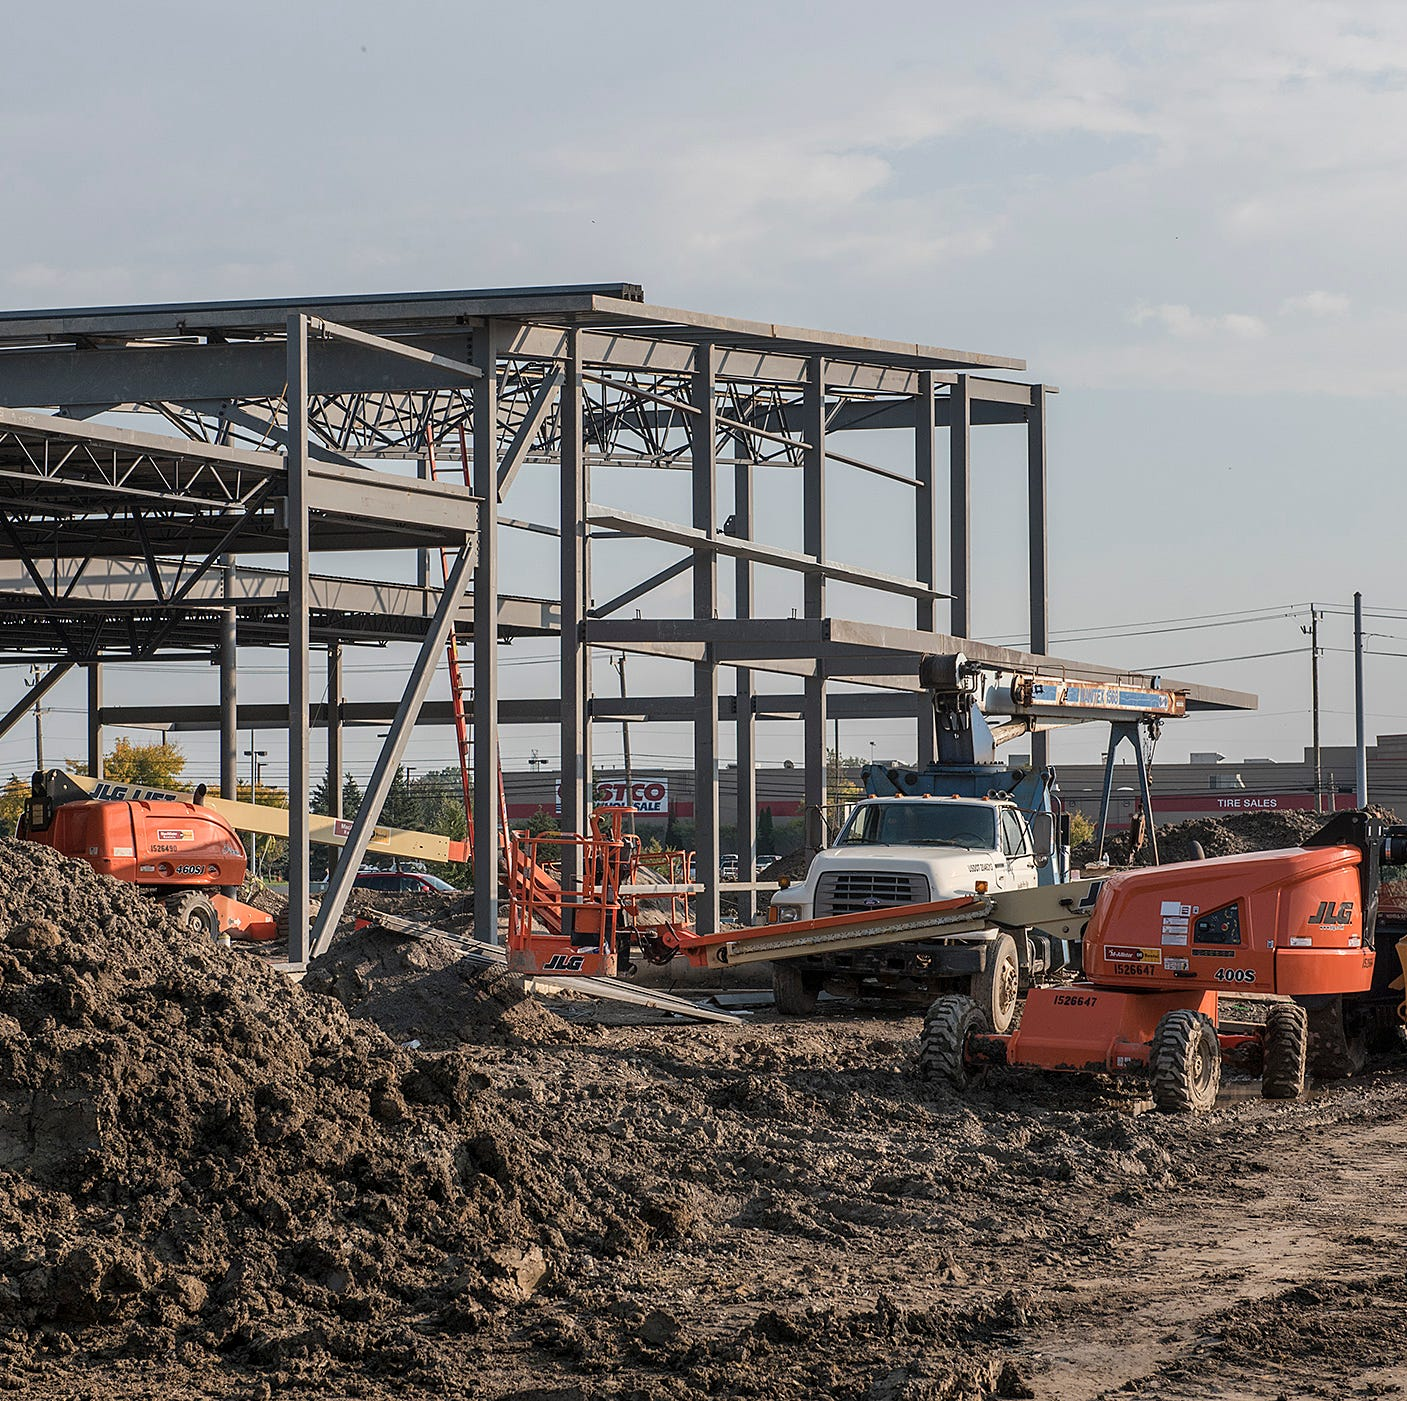 The new Aldi store is under construction at the northeast corner of Middlebelt Road and Interstate 96.